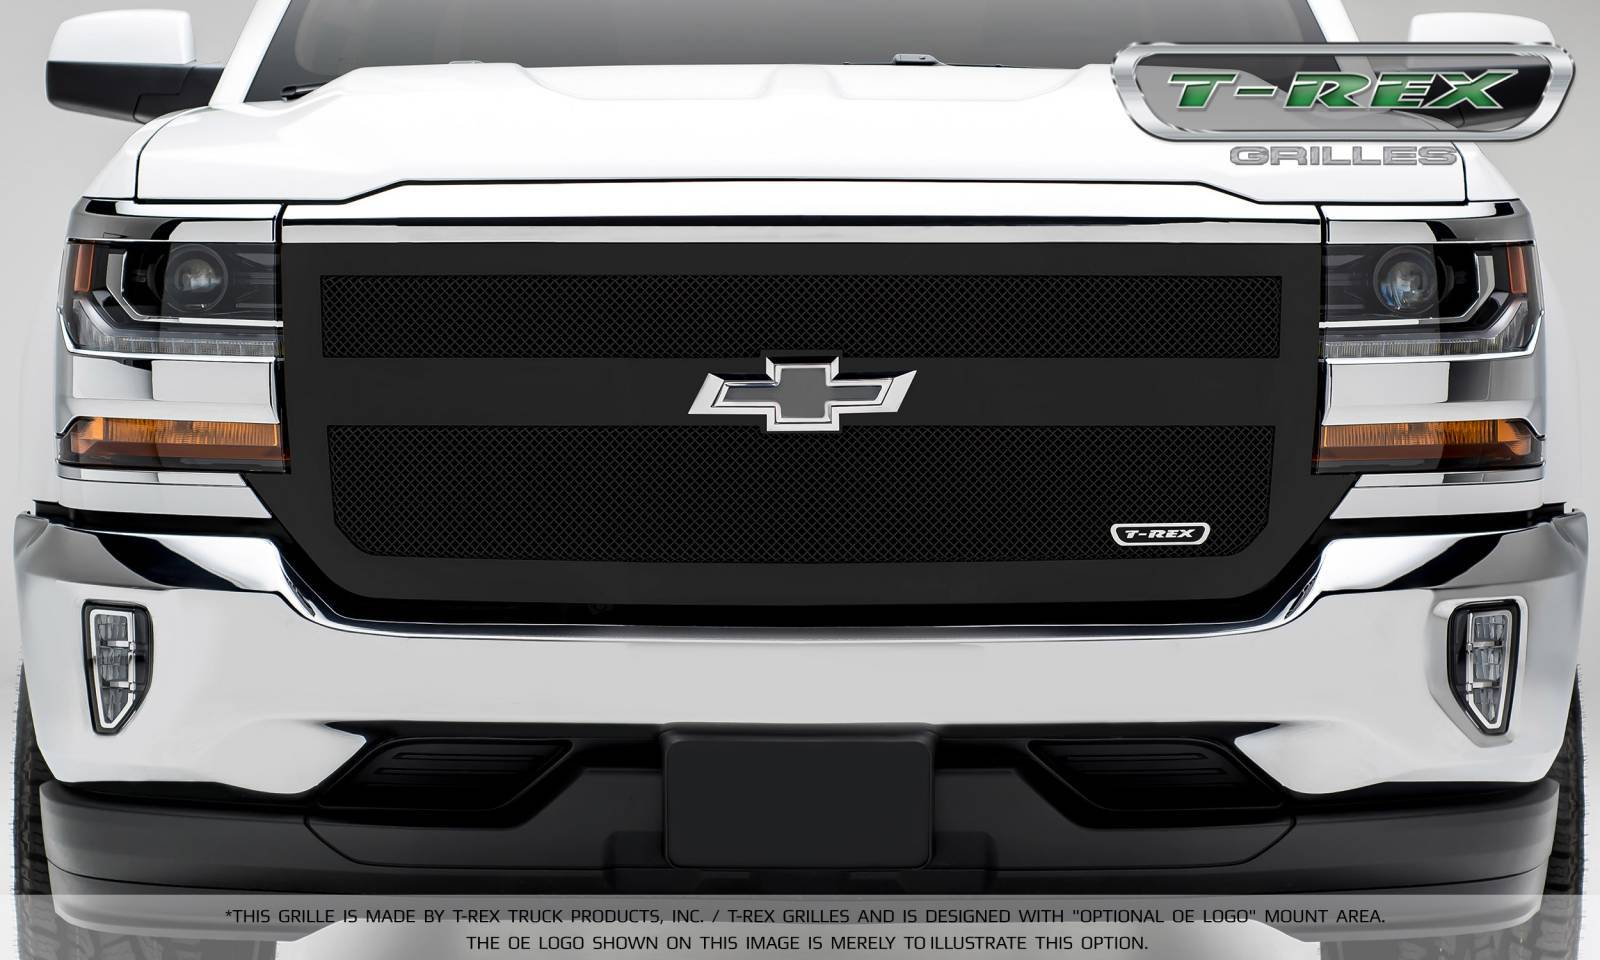 T-REX Grilles - Chevrolet Silverado 1500 Upper Class Mesh Grille, Black Powder Coated, 1 Bar Design, Main Grille Replacement - Pt # 51131